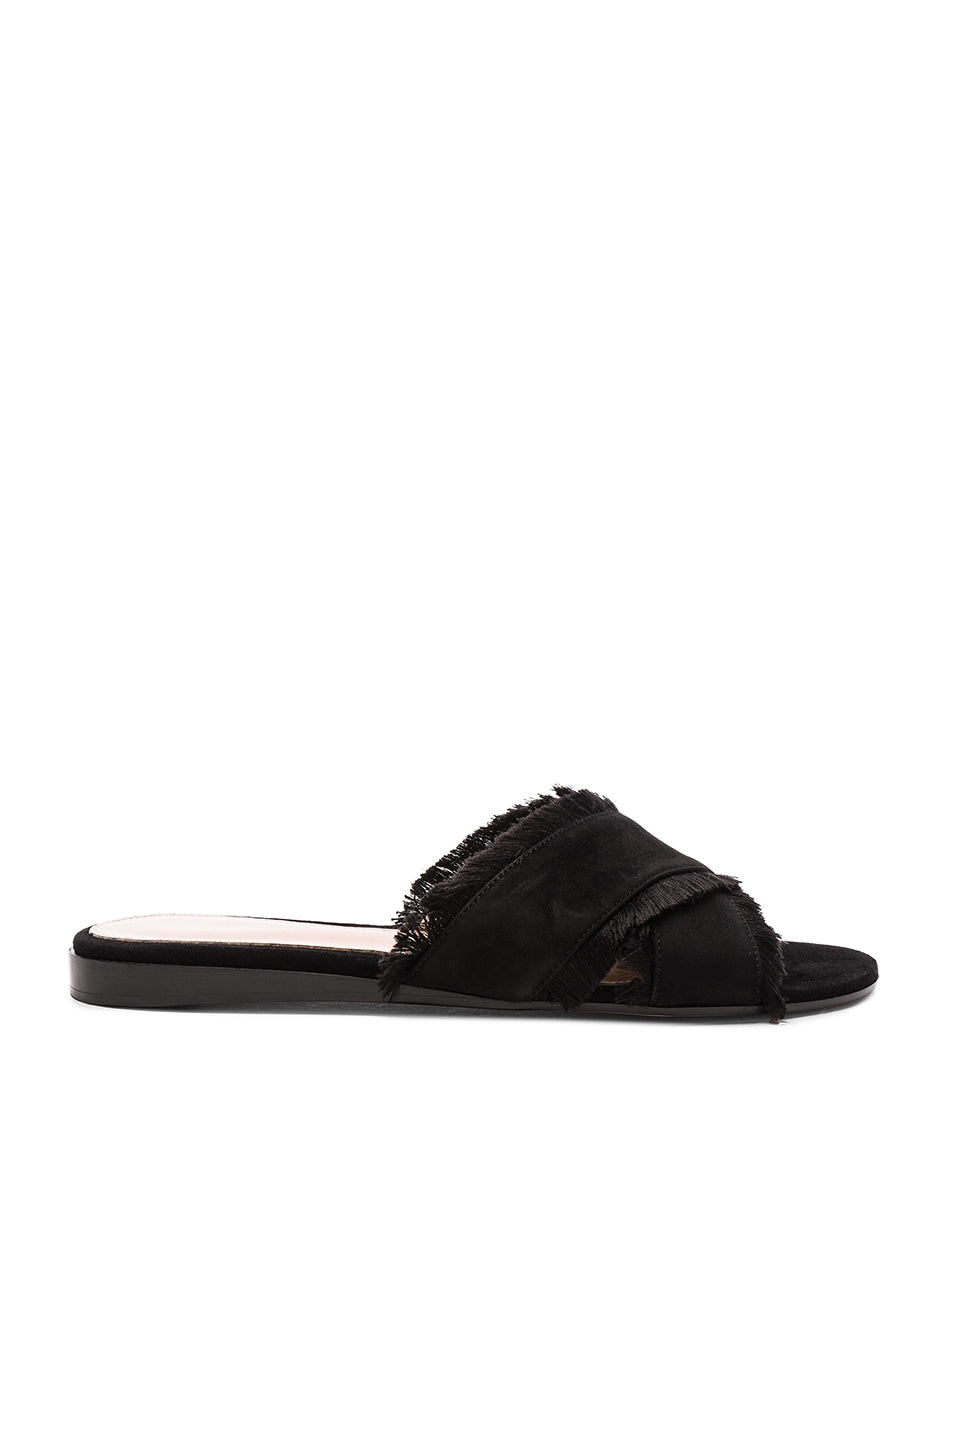 Image 1 of Gianvito Rossi Suede & Satin Barth Flat Sandals in Black